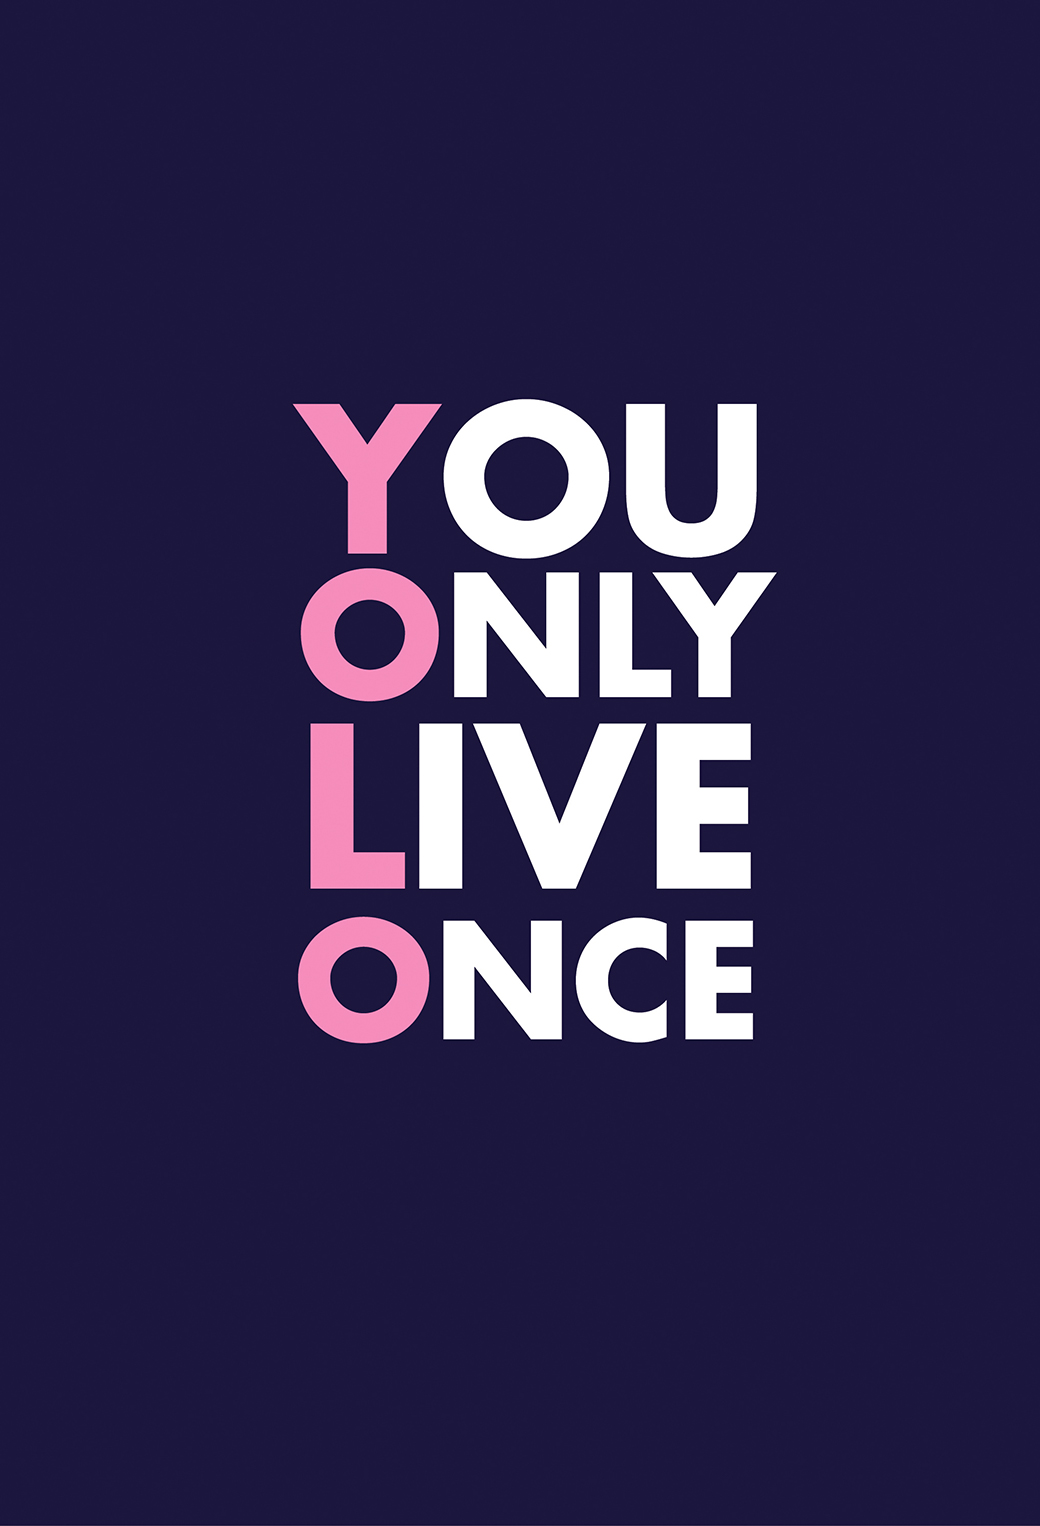 YOLO Wallpaper for iPhone X, 8, 7, 6 - Free Download on ... Yolo Logo Wallpaper